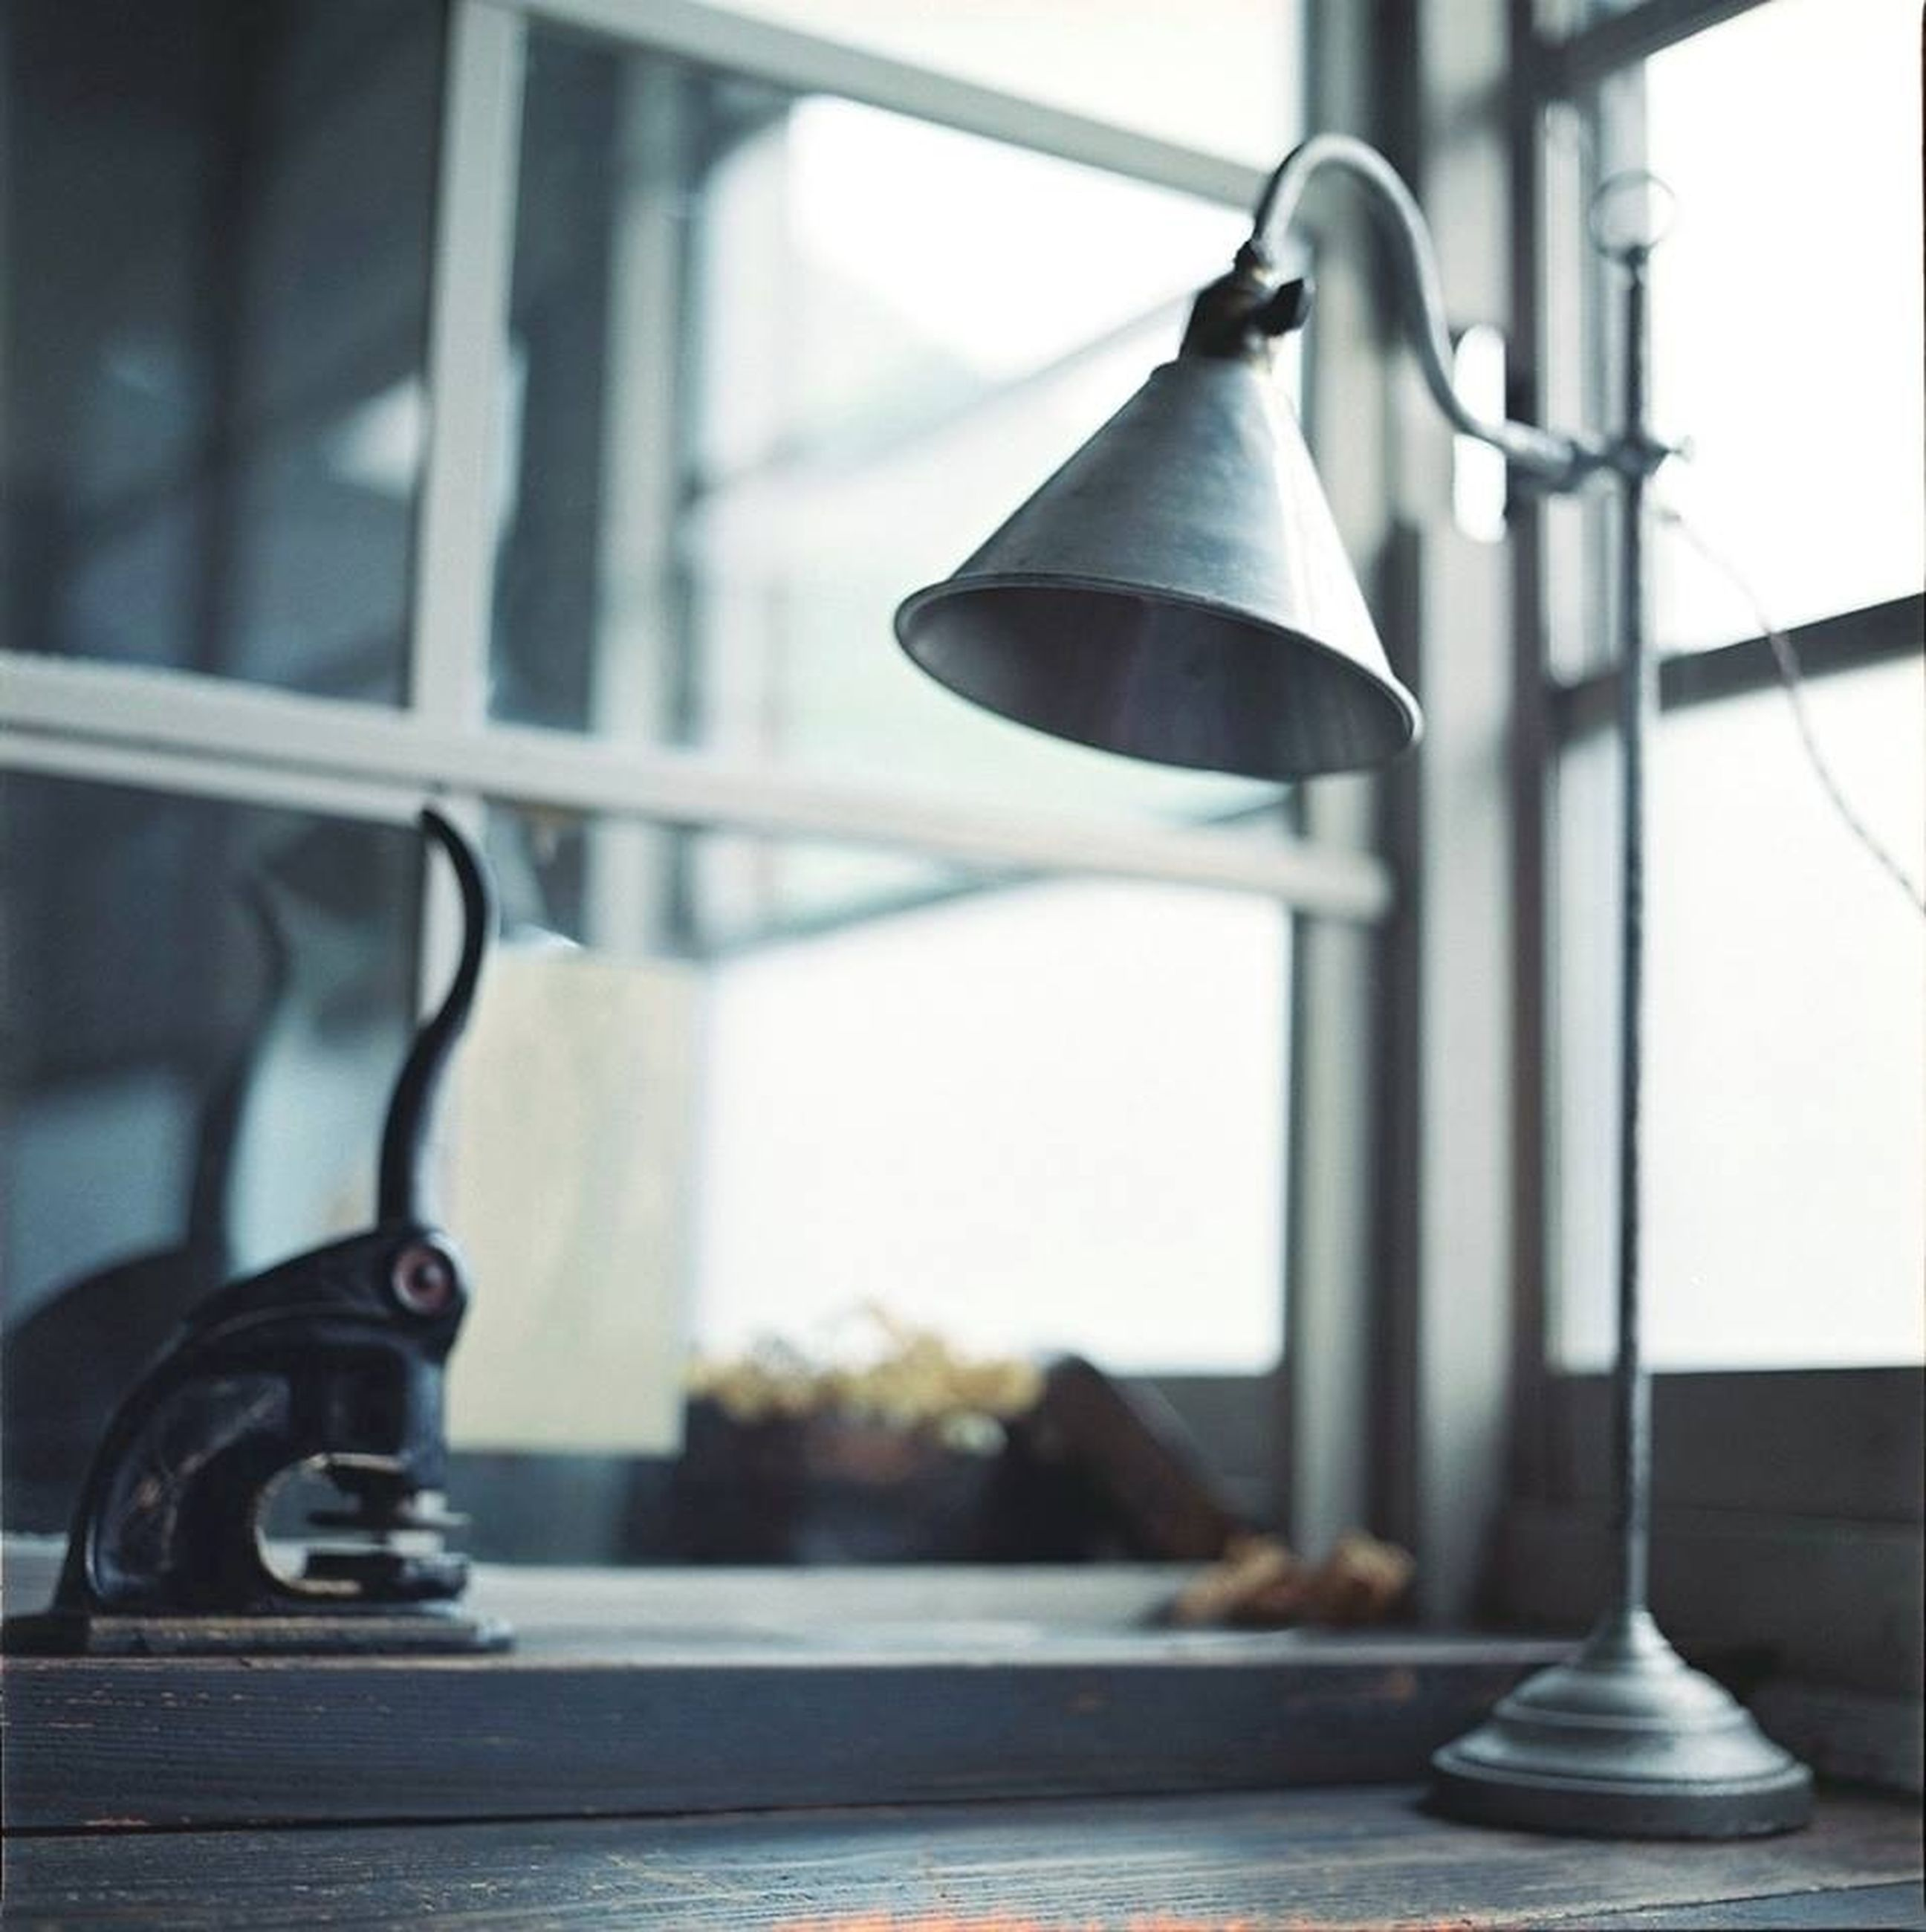 indoors, metal, focus on foreground, close-up, metallic, hanging, handle, still life, no people, absence, day, lighting equipment, old-fashioned, selective focus, sunlight, home interior, empty, railing, table, shadow